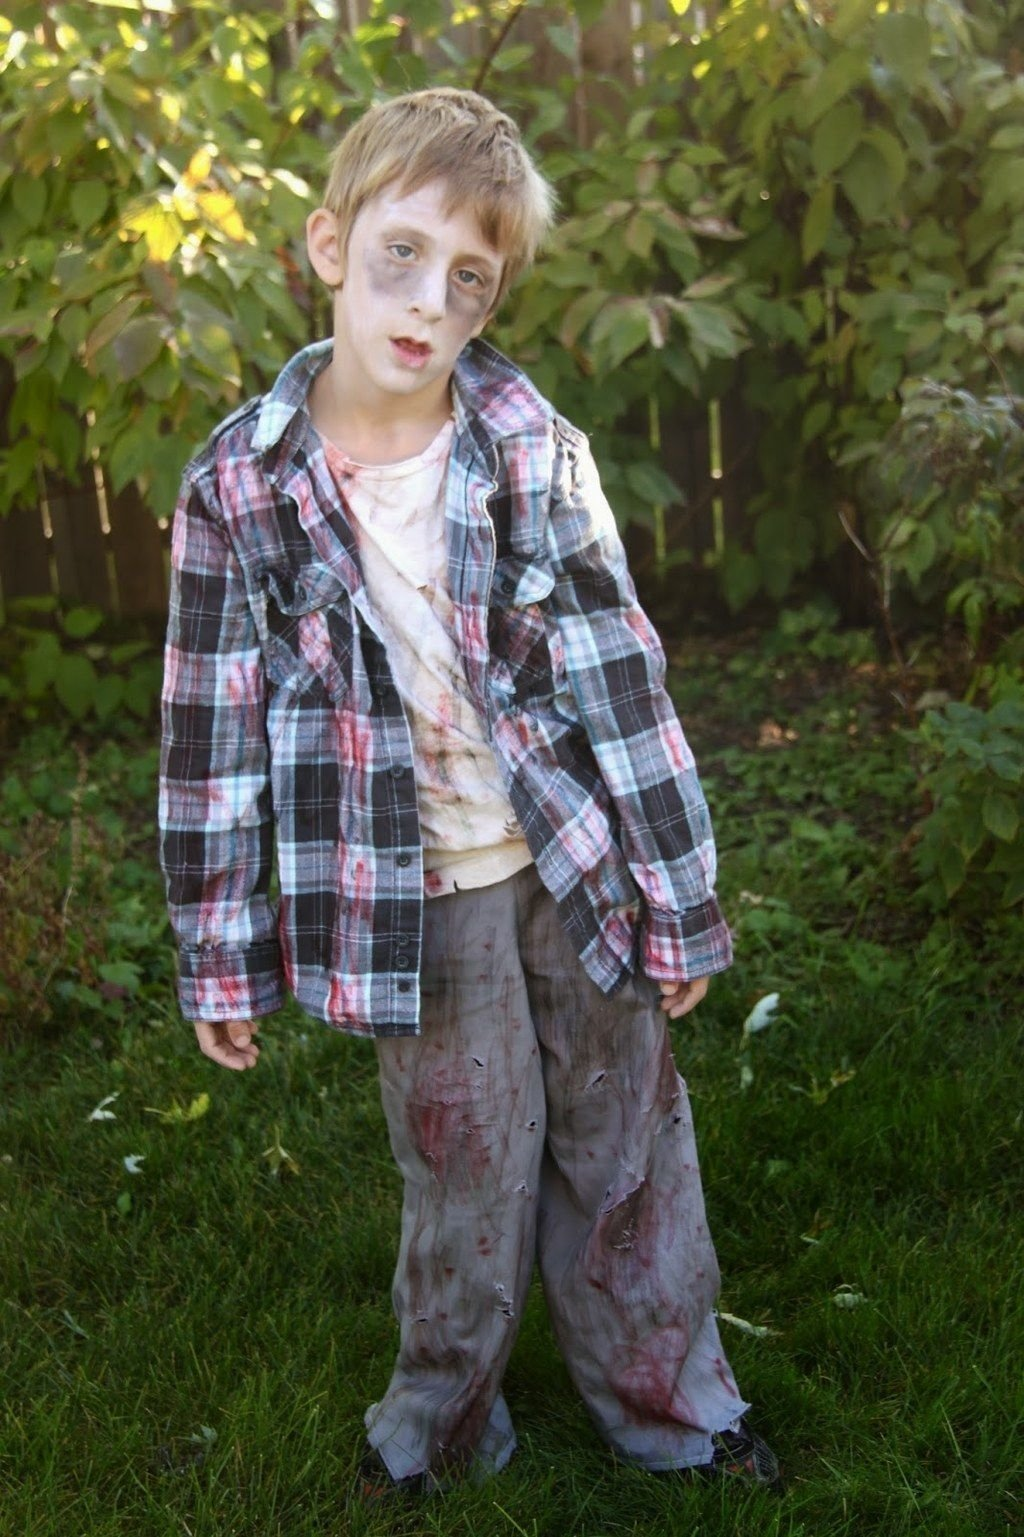 10 Attractive Zombie Costume Ideas For Kids 21 cute and clever diy halloween costume ideas for kids homemade 2021